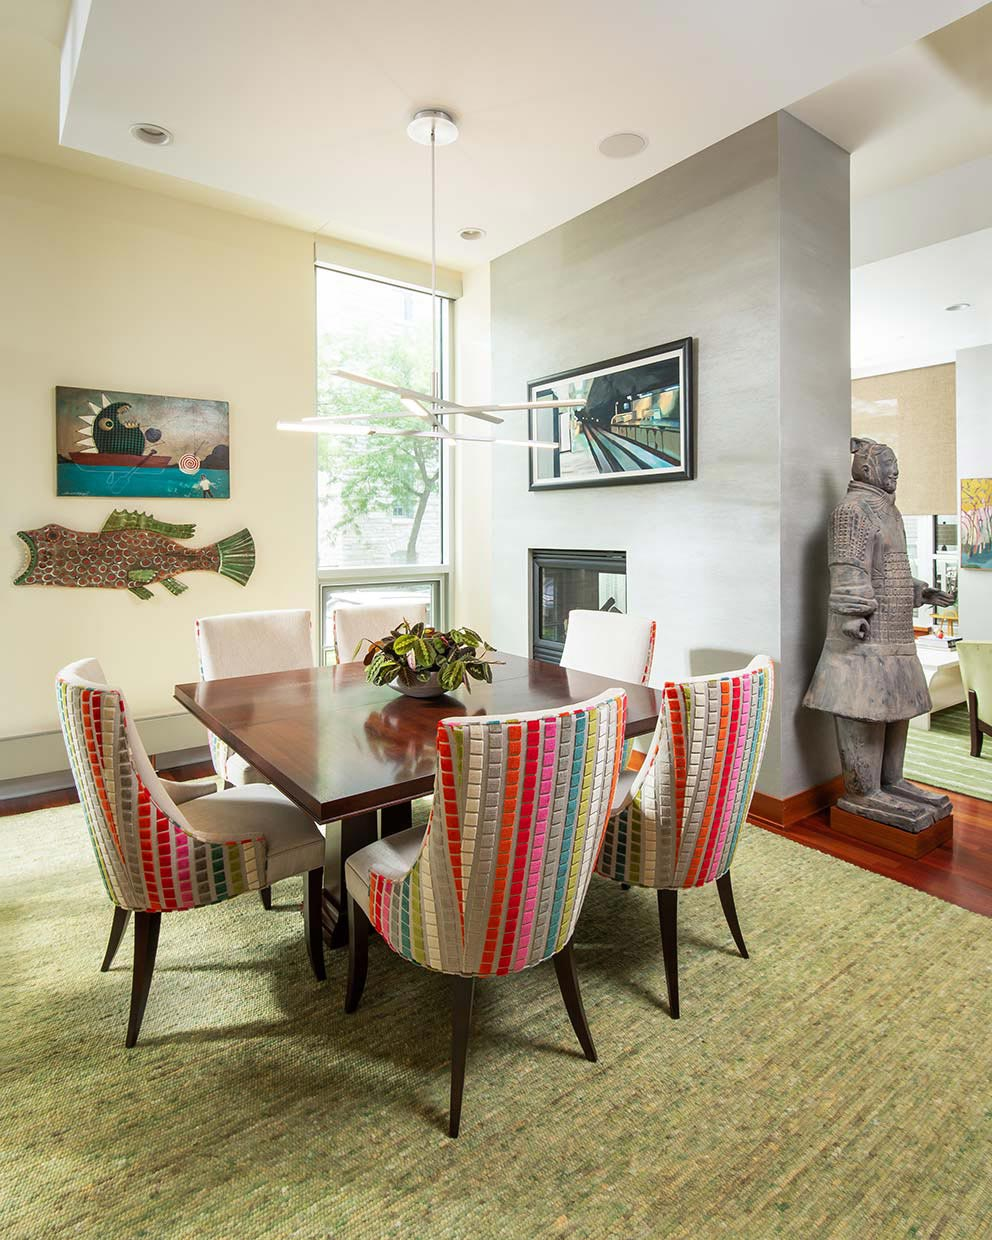 Modern-Formal-dining-room-interior-designer-minneapolis.jpg